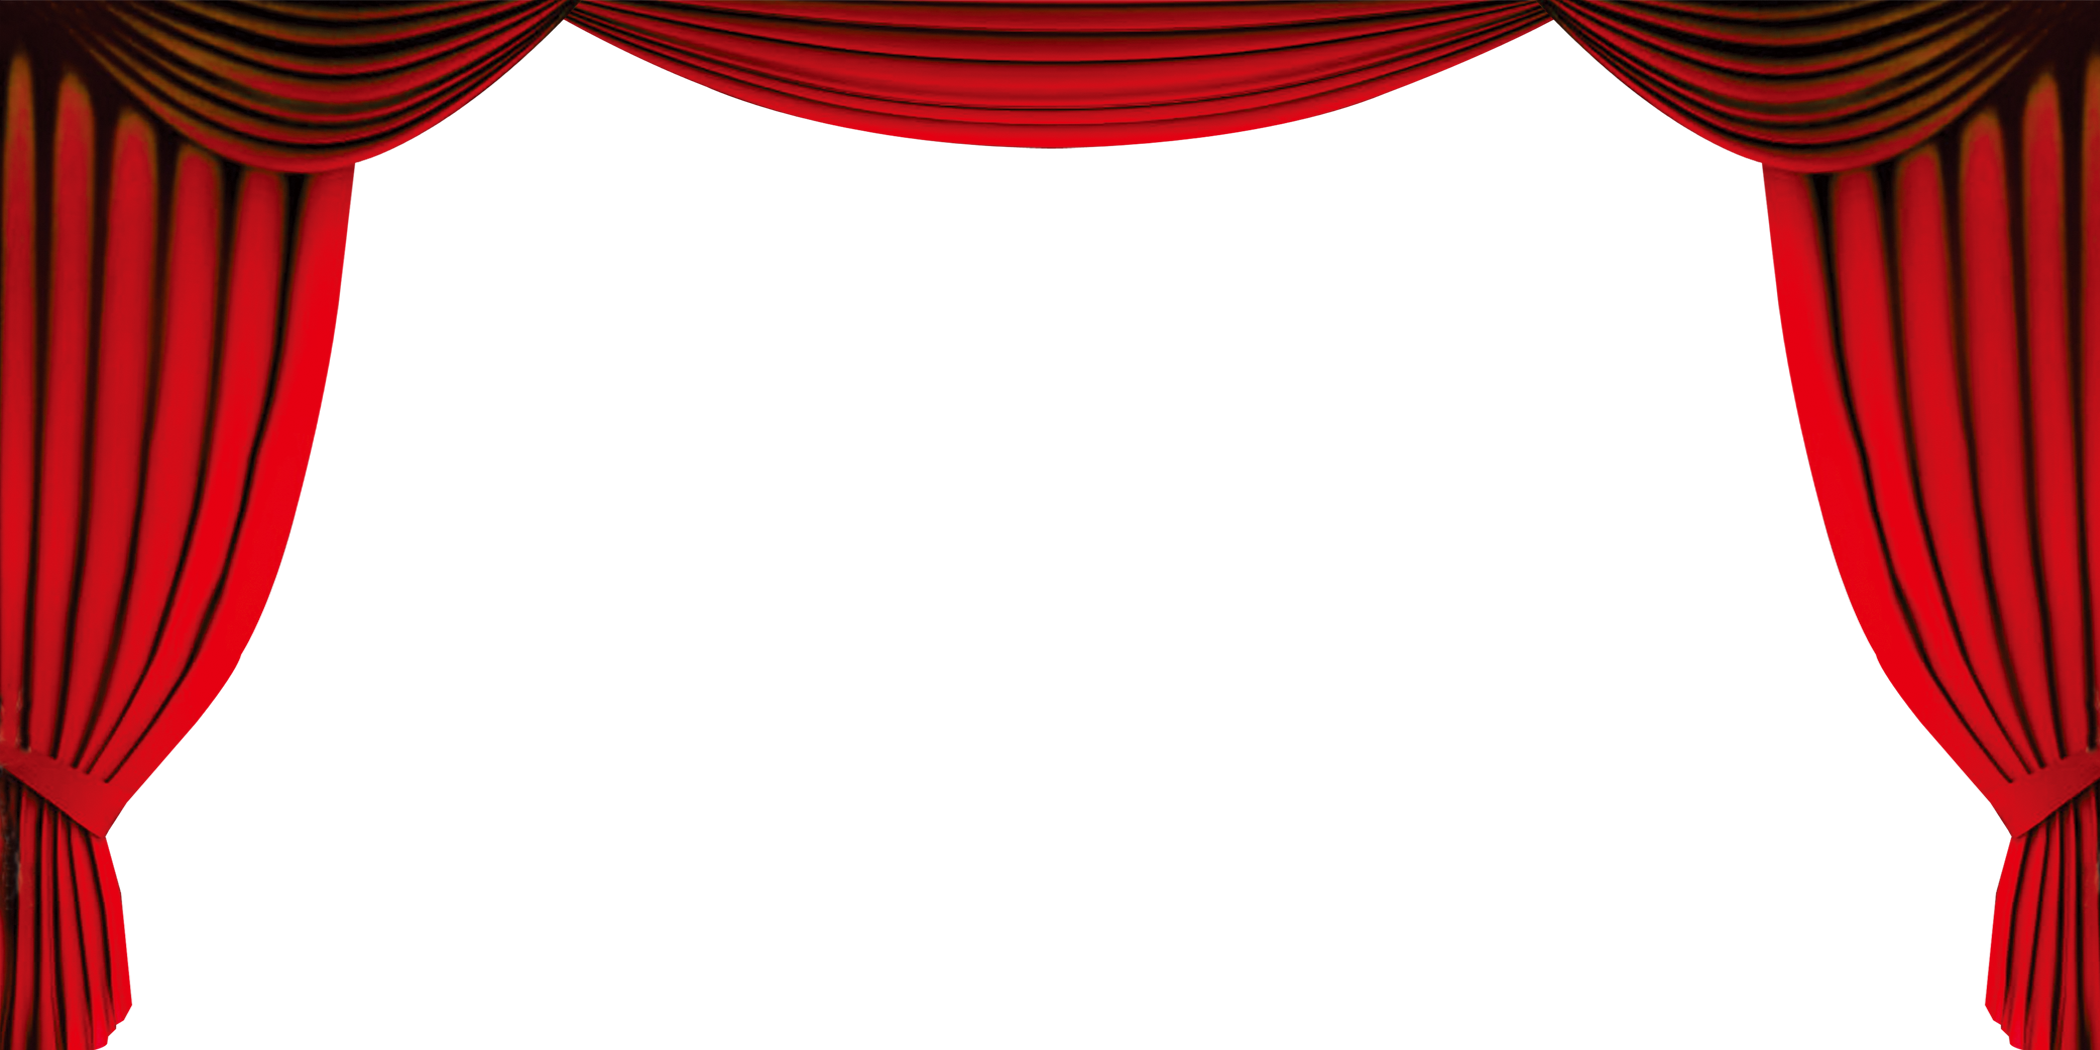 Gold curtain png. Red clip art opening